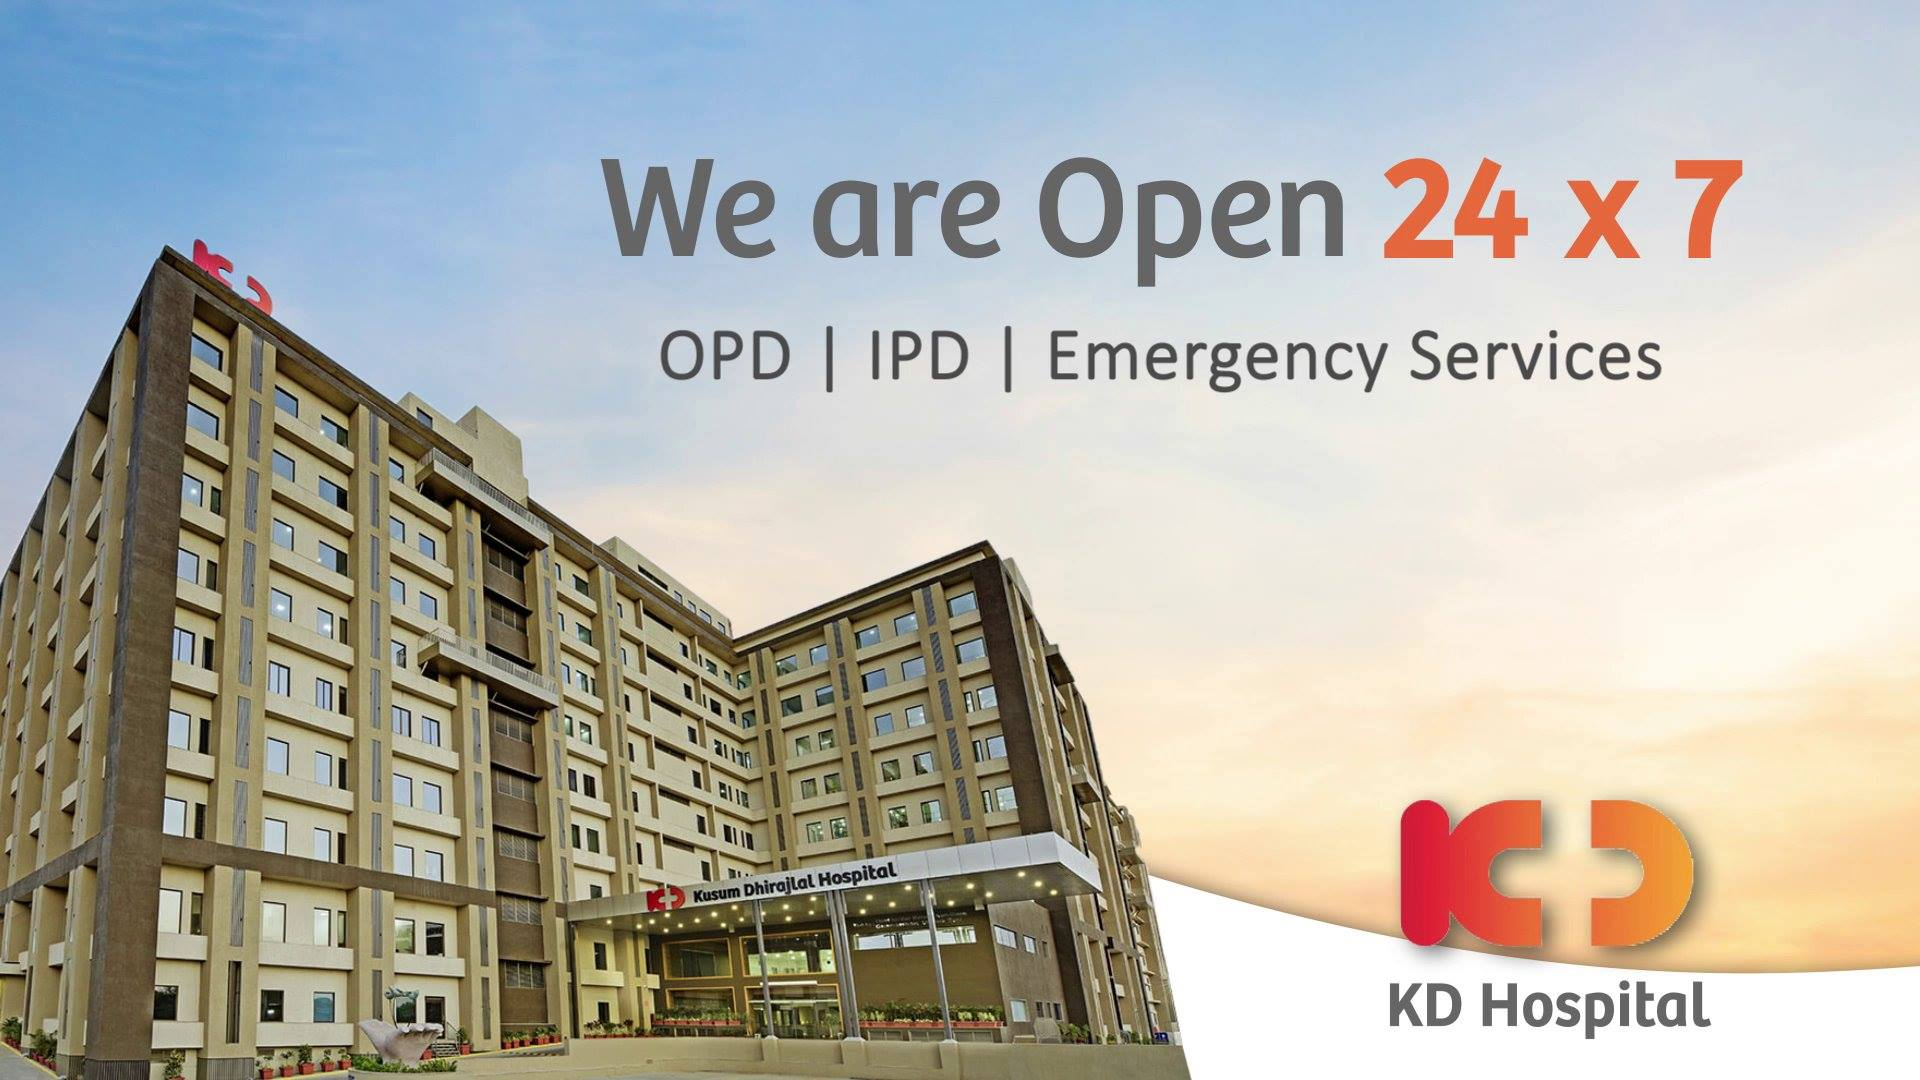 During these testing times, KD Hospital assures you that we are there for you and always a step ahead to take precautions while providing you safe healthcare services.  Our OPD, IPD & Emergency Services are fully operational with an option of Tele-Medicine available as well. We remain committed towards providing best patient care at an affordable rate.  Call us on 07966770000 to book an appointment and consult our expert Doctors now!  #CoronaVirus #CoronaAlert #StayAware #StaySafe #pandemic #caronavirusoutbreak #Quarantined #QuarantineAndChill #coronapocalypse #KDHospital #goodhealth #health #wellness #fitness #healthiswealth #healthyliving #patientscare #Ahmedabad #Gujarat #India